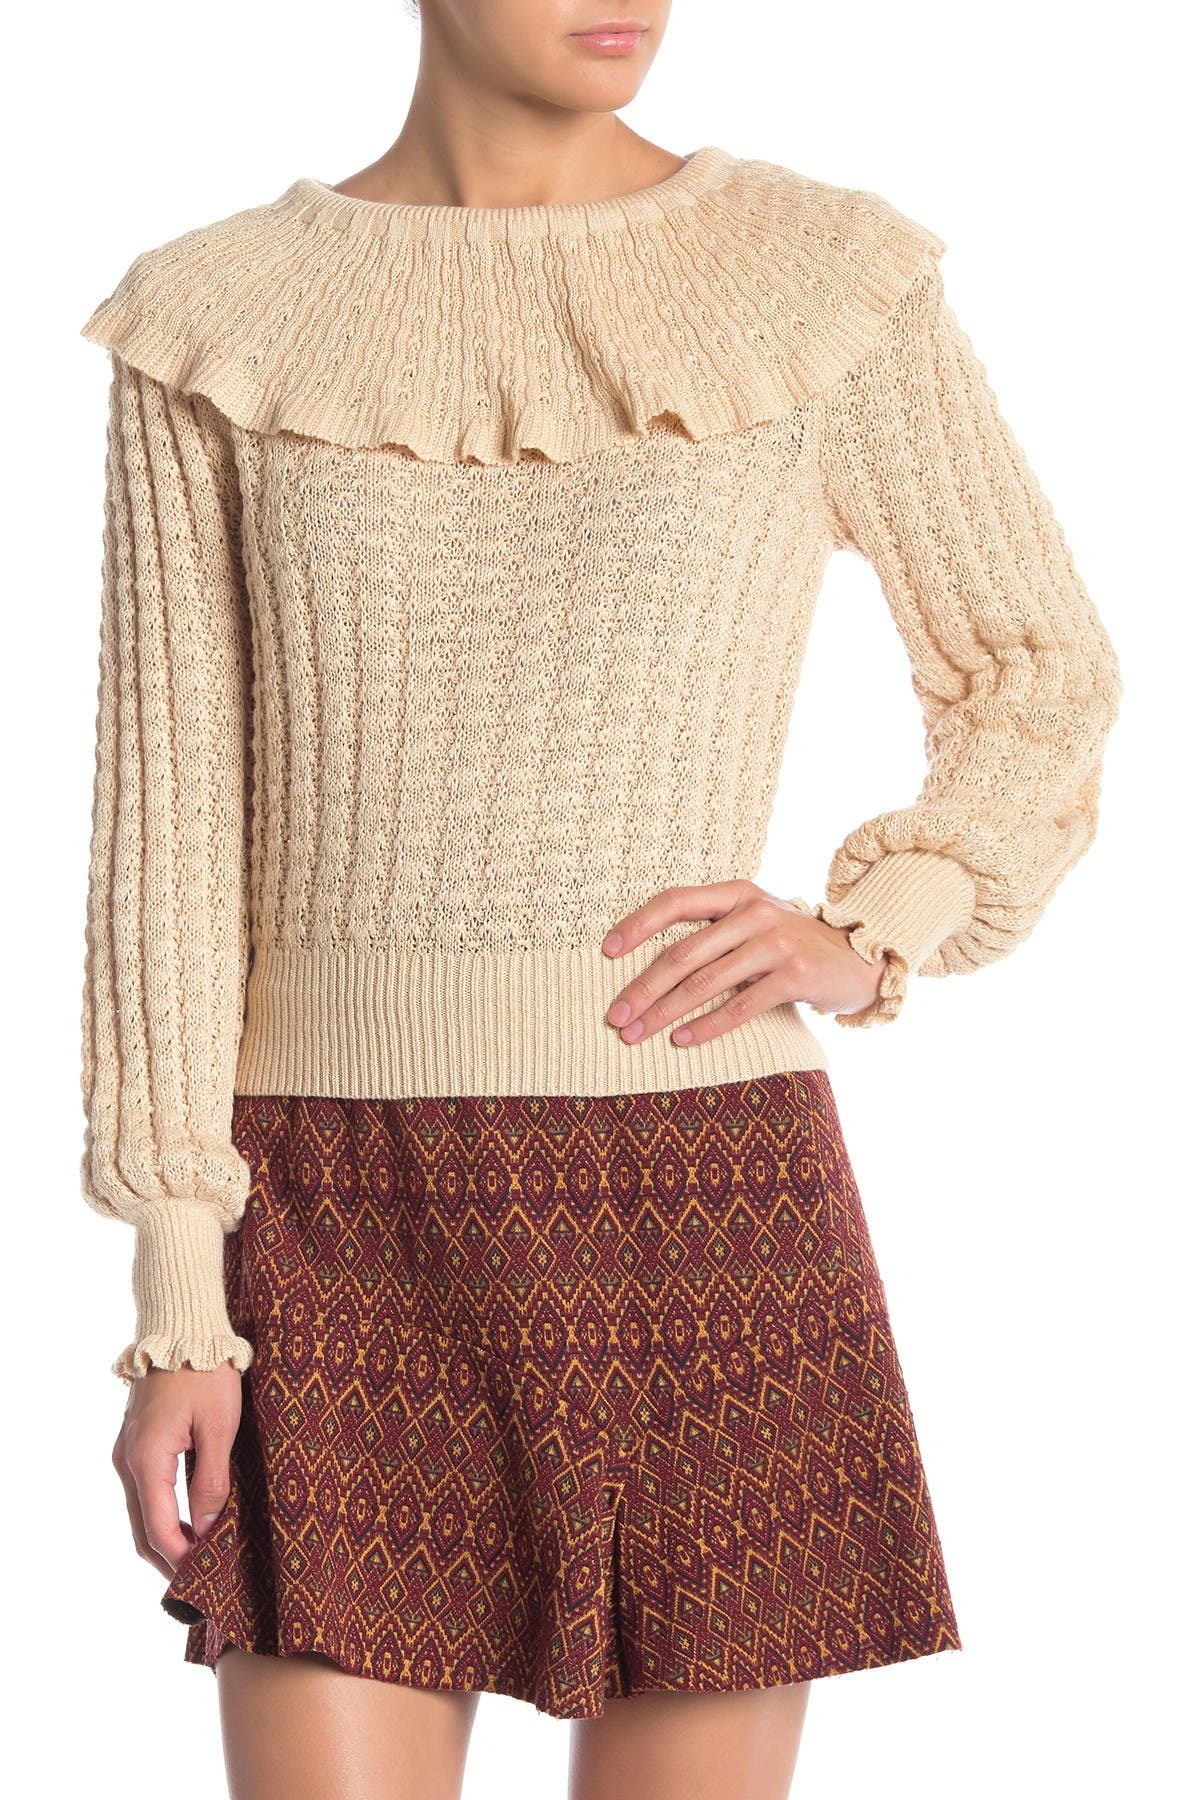 Image of Free People Crazy in Love Ruffle Off-the-Shoulder Sweater Top